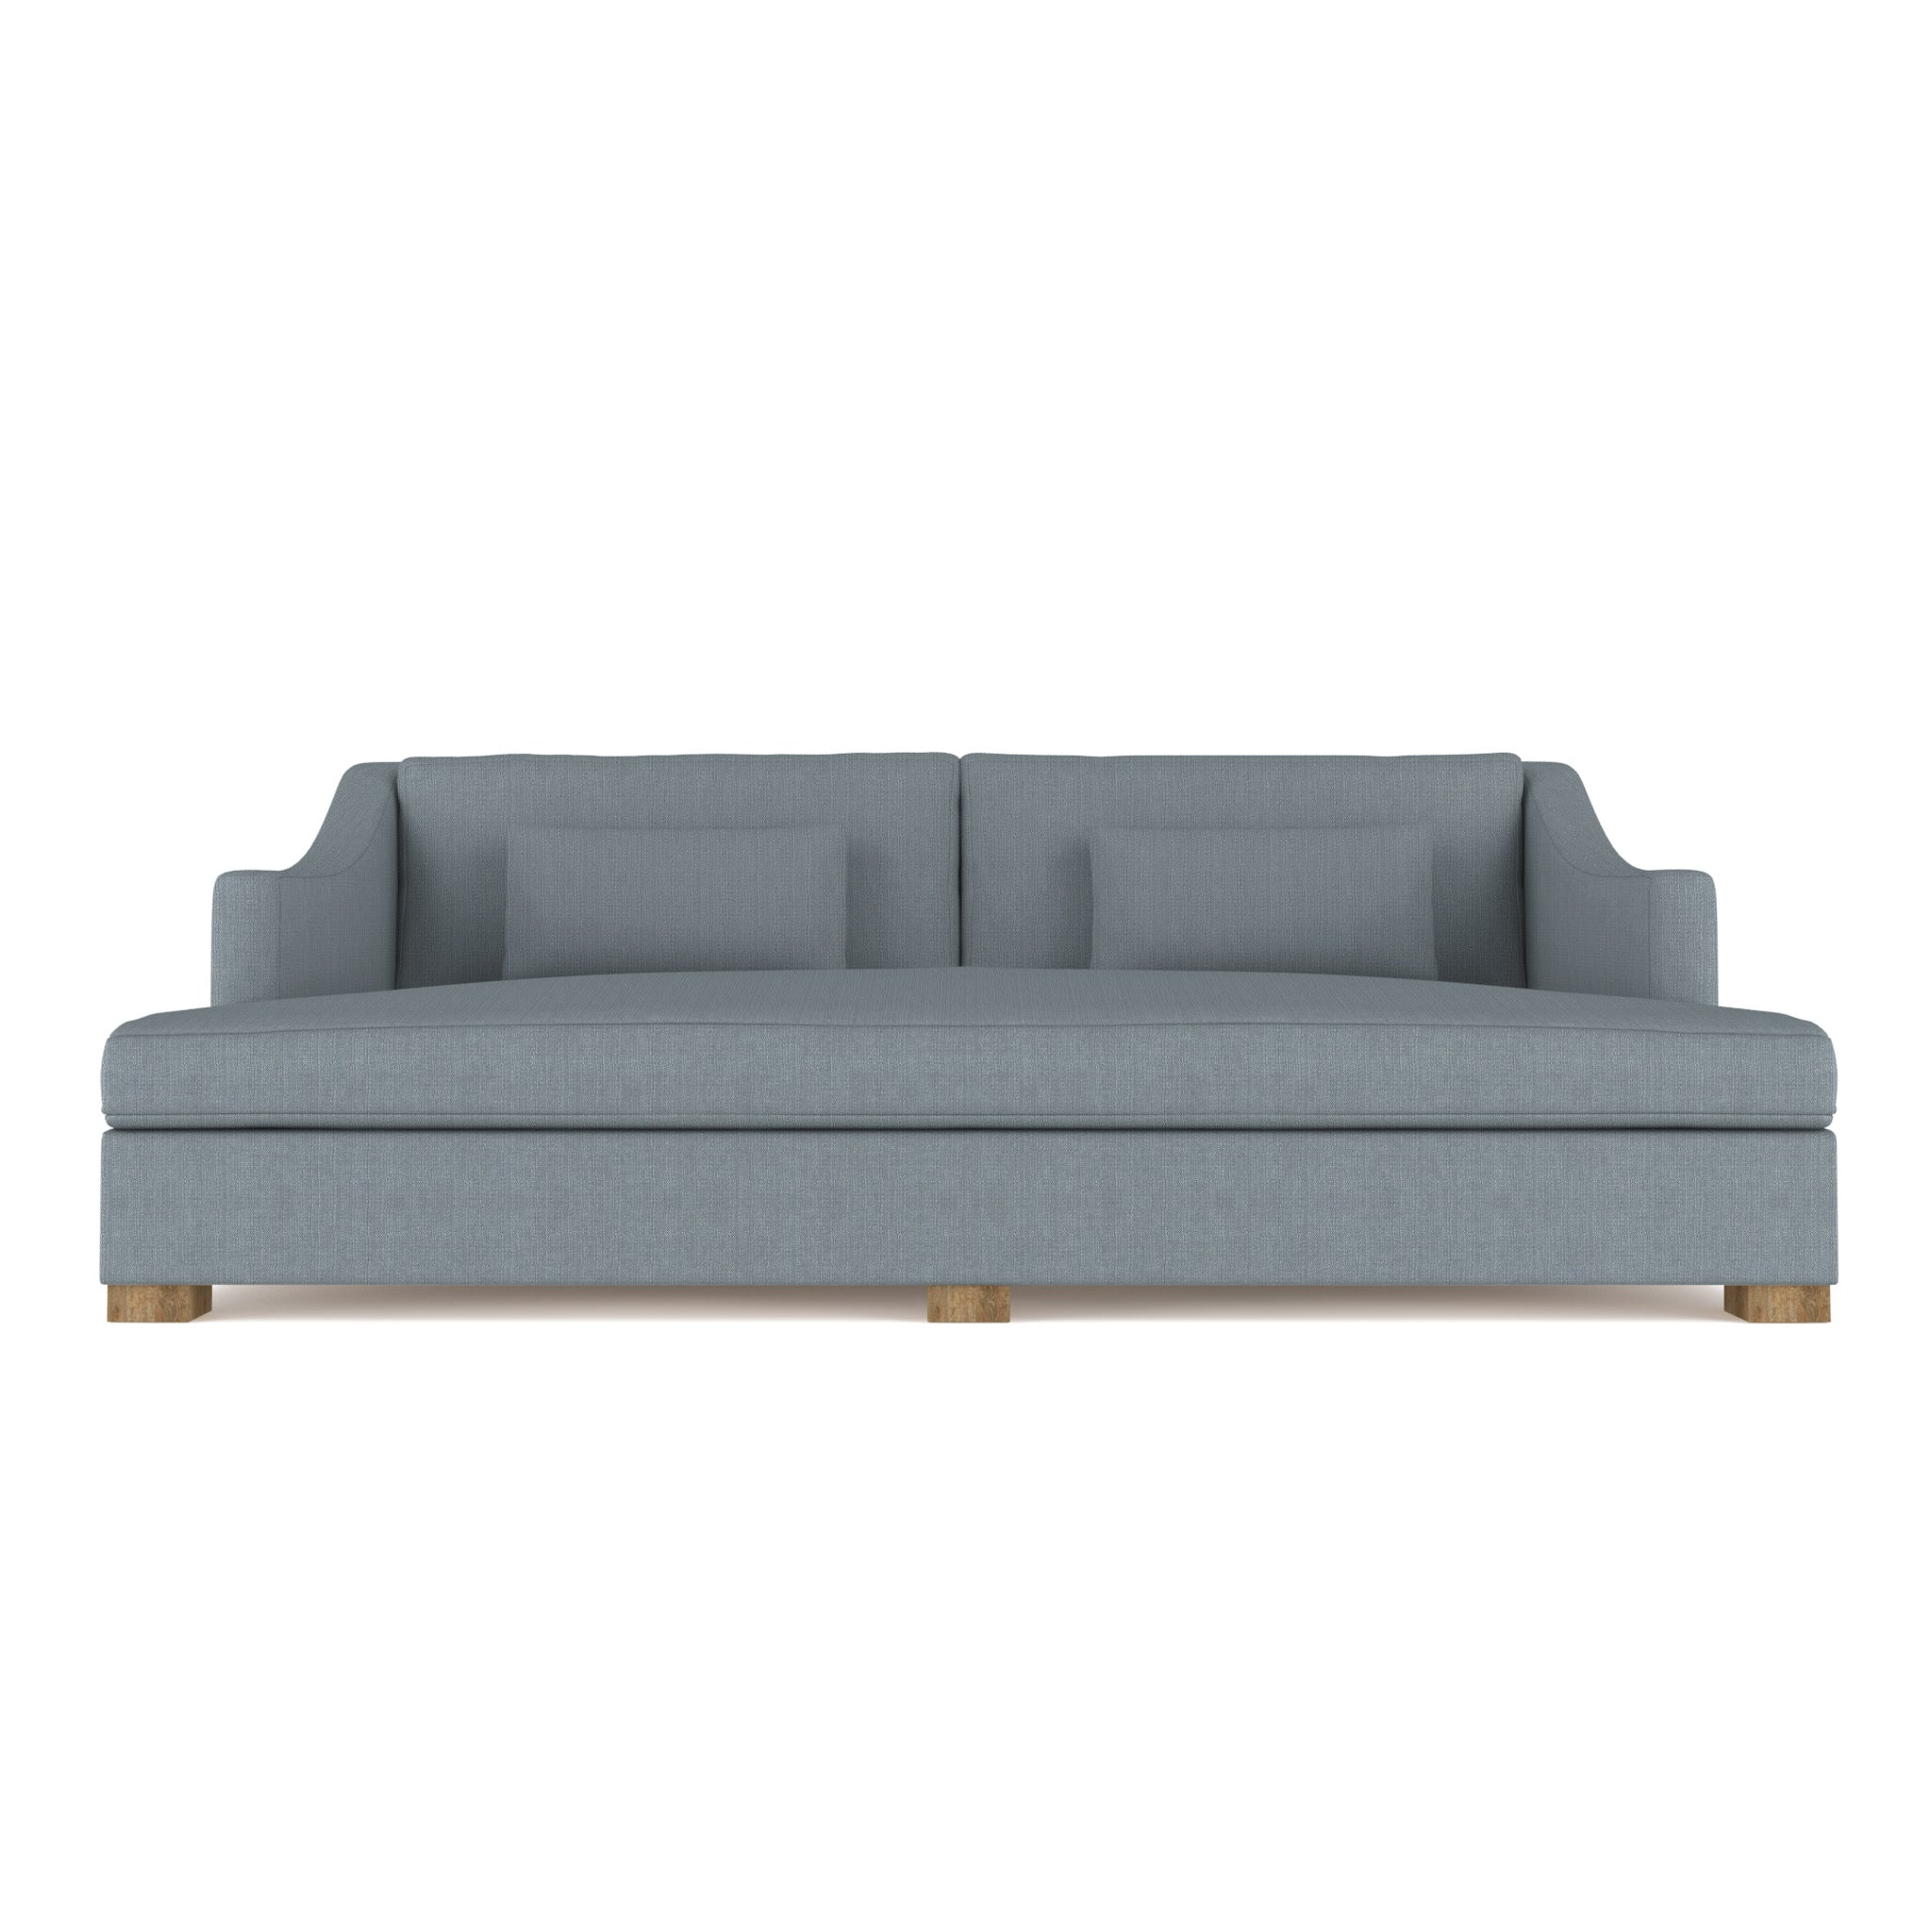 Crosby Daybed - Haze Box Weave Linen